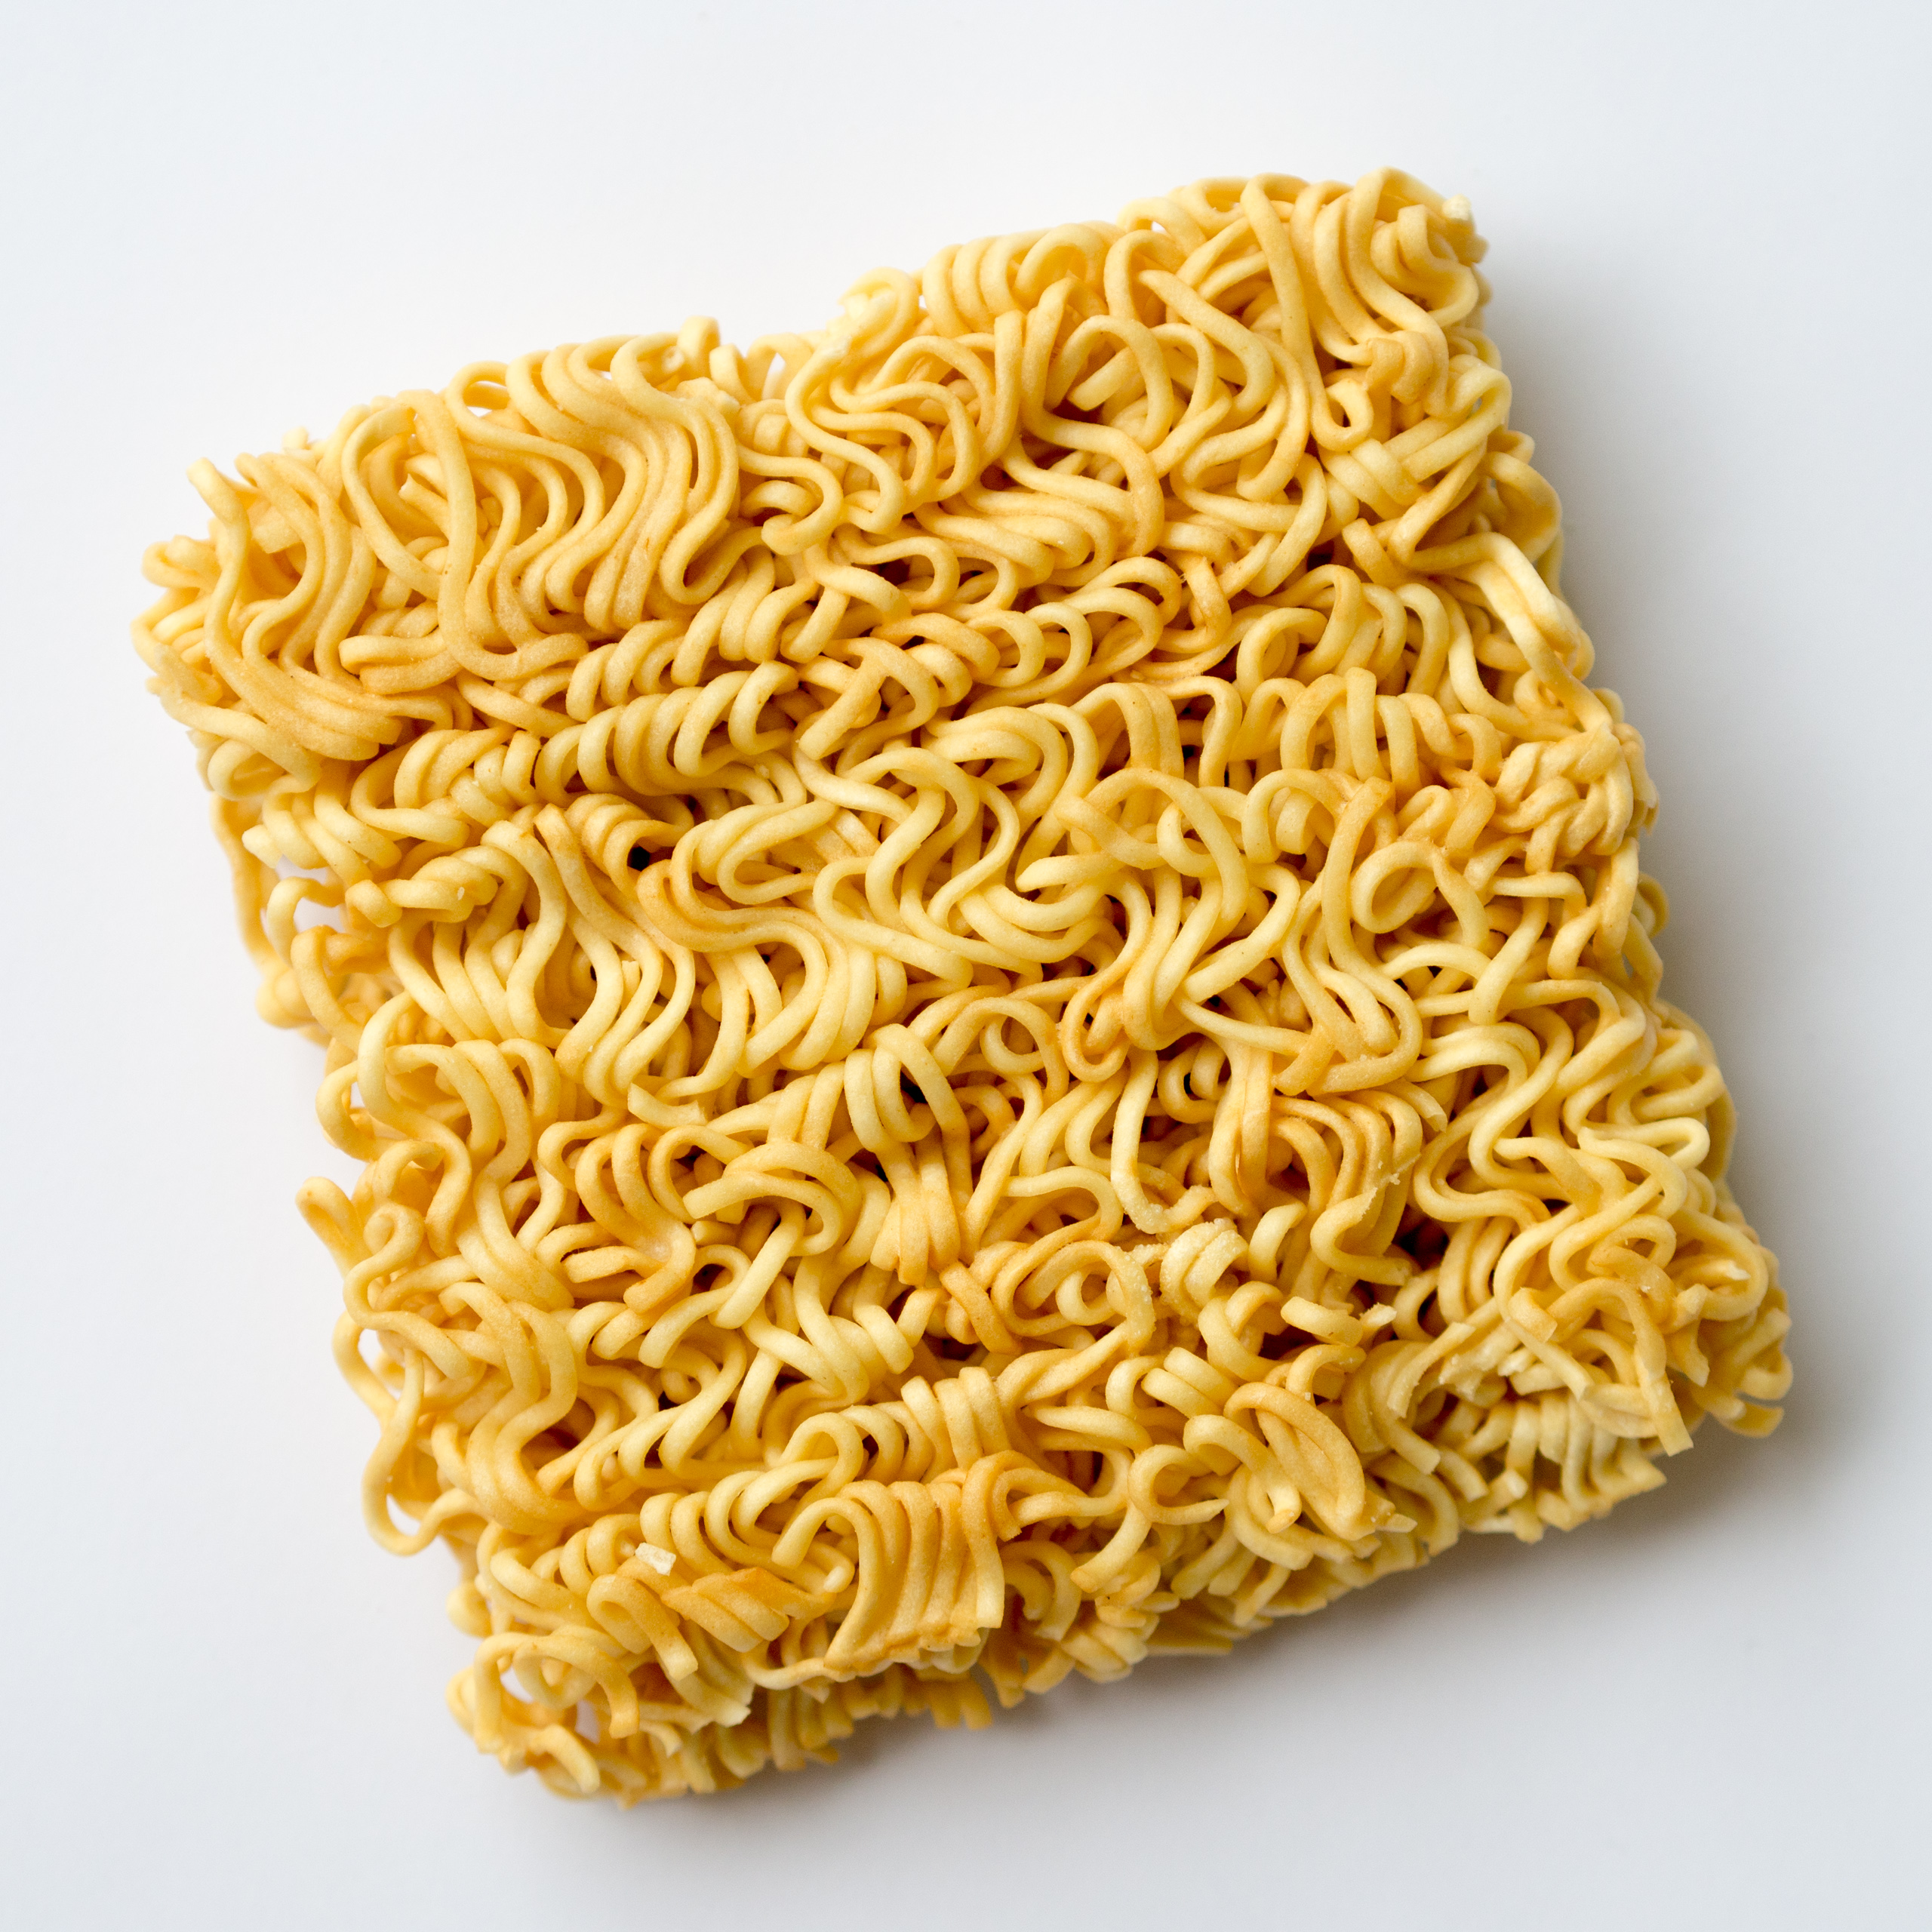 global instant noodles industry